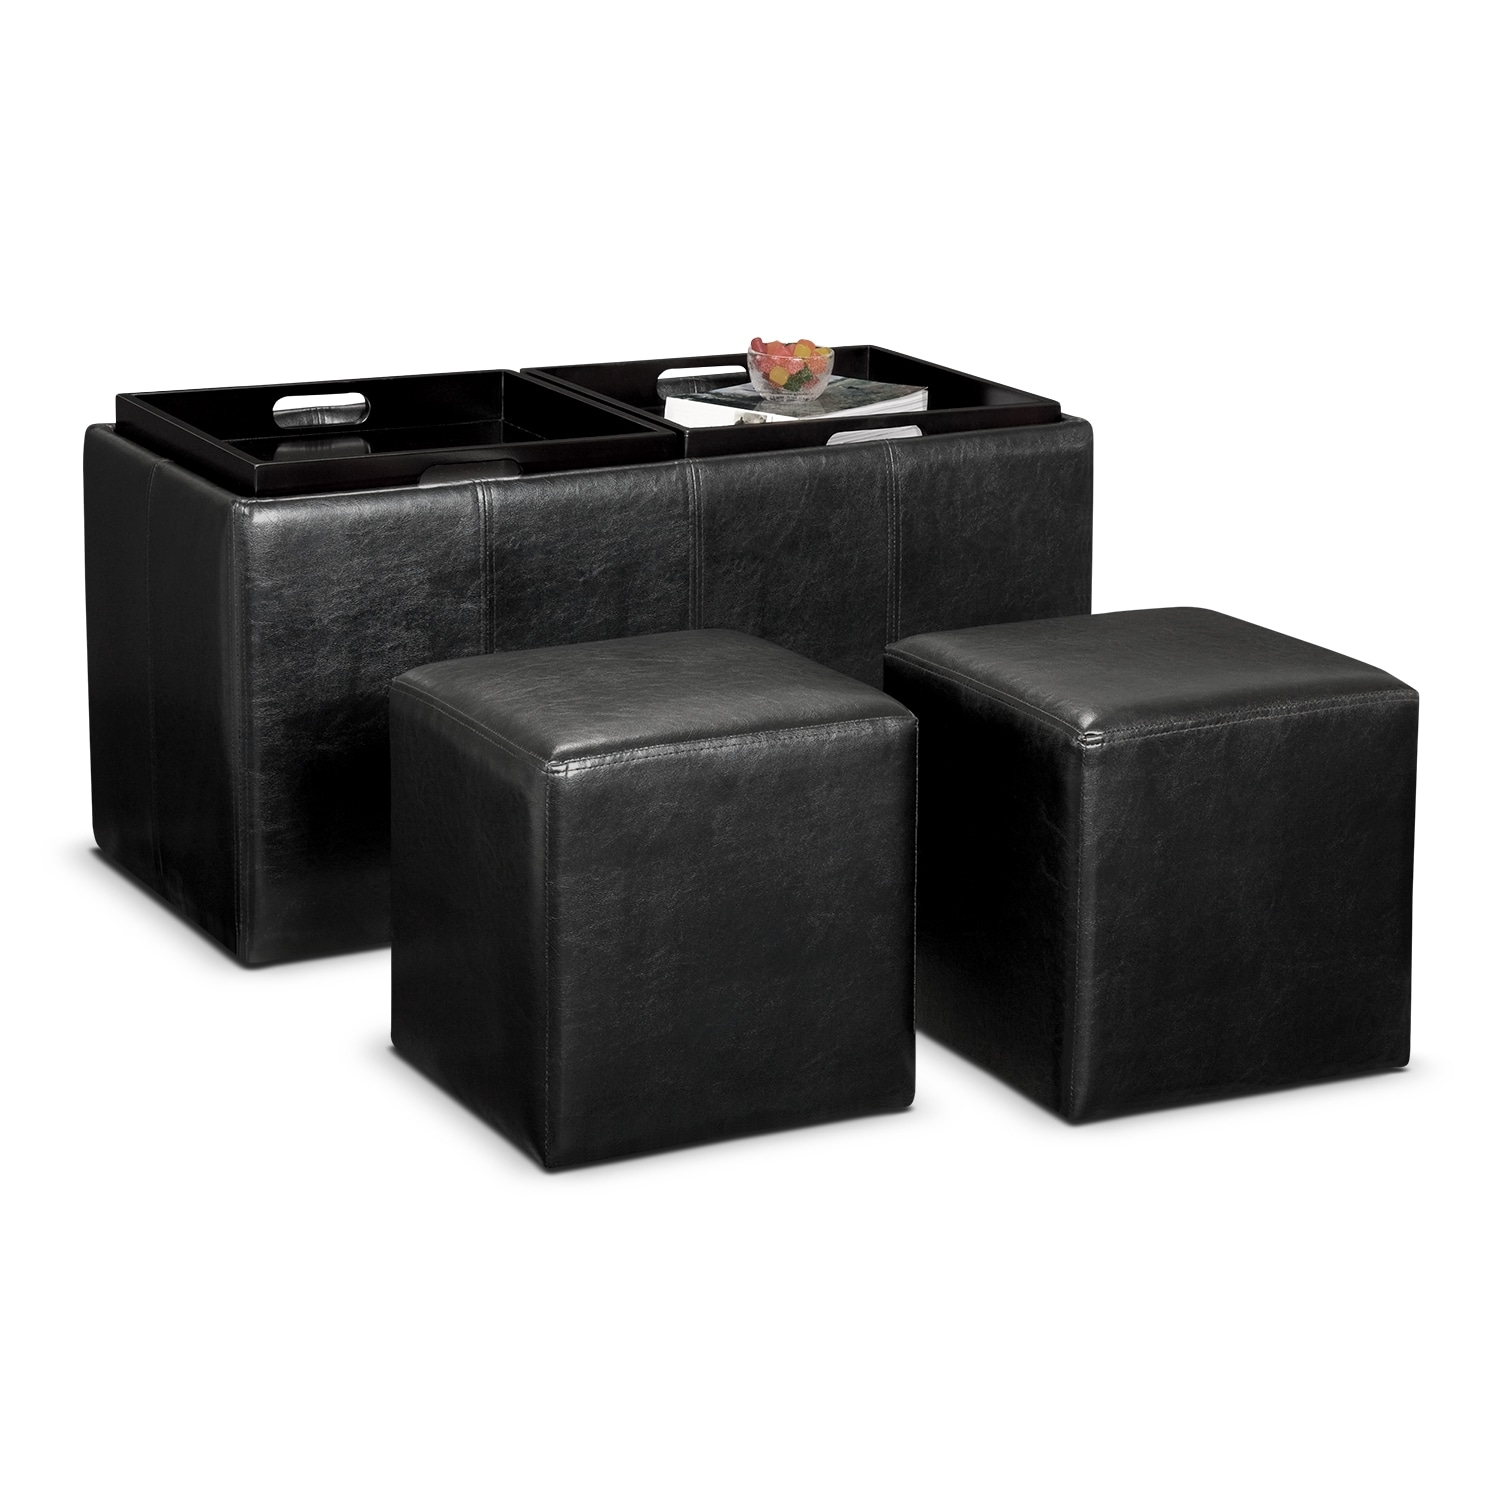 Accent And Occasional Furniture   Tiffany 3 Piece Storage Ottoman With  Trays   Black